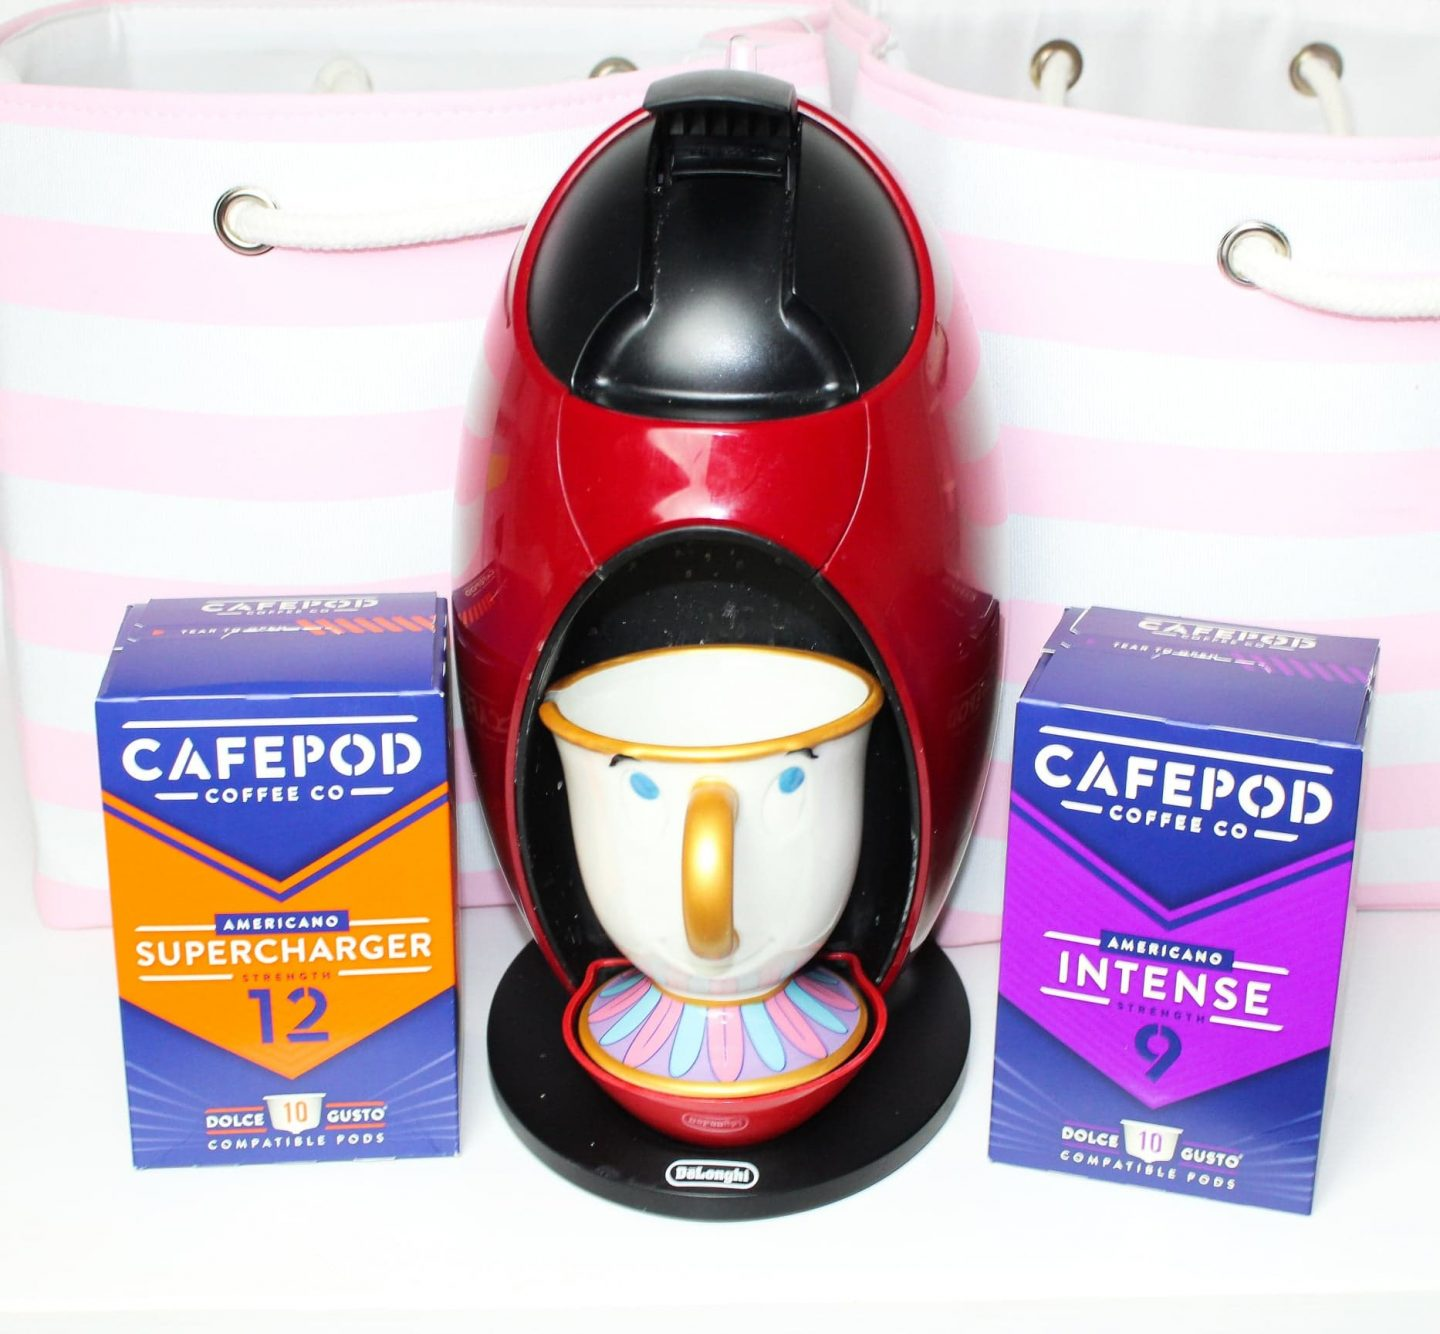 CafePod Coffee Co. | Deliciously Strong Coffee for Serious Coffee Drinkers